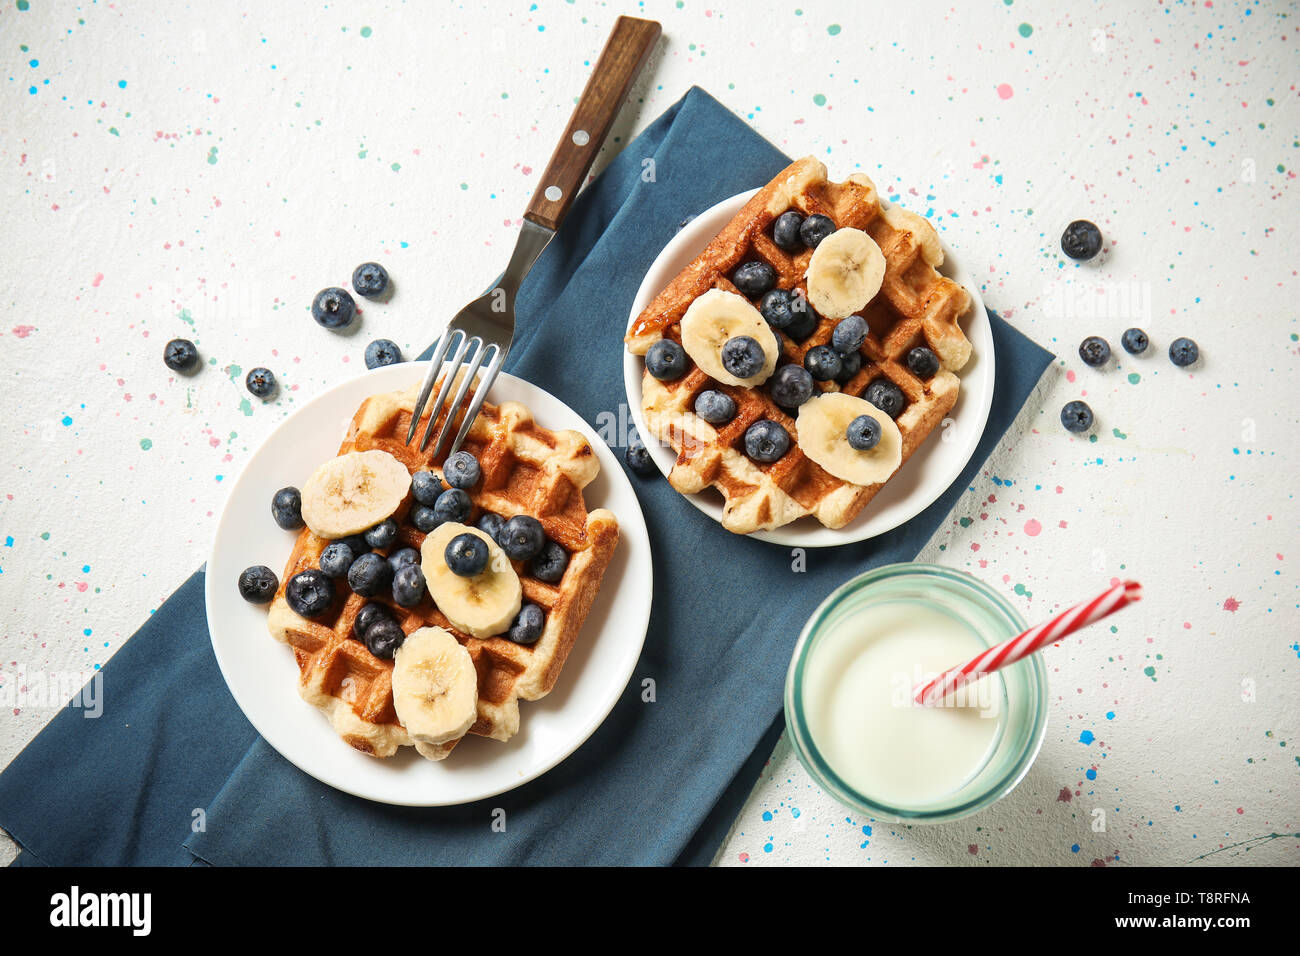 Delicious waffles with banana slices, blueberries and glass of milk on light table - Stock Image